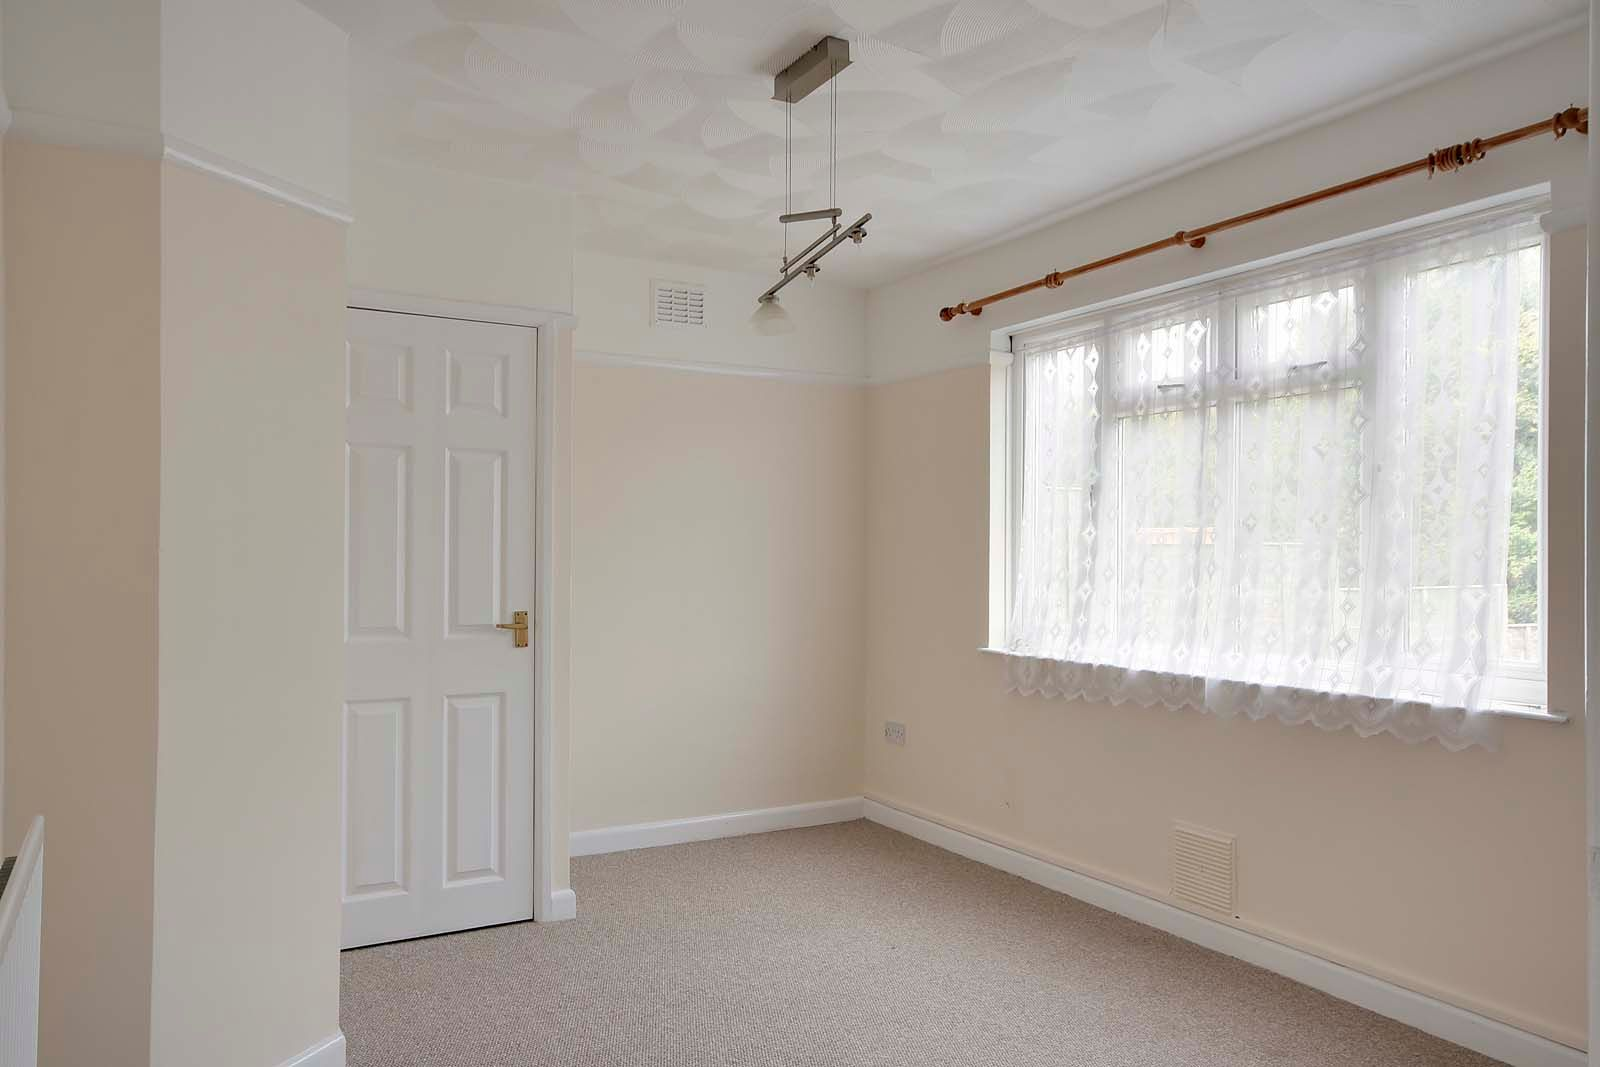 2 bed Apartment to rent in East Preston - Bedroom (Property Image 5)